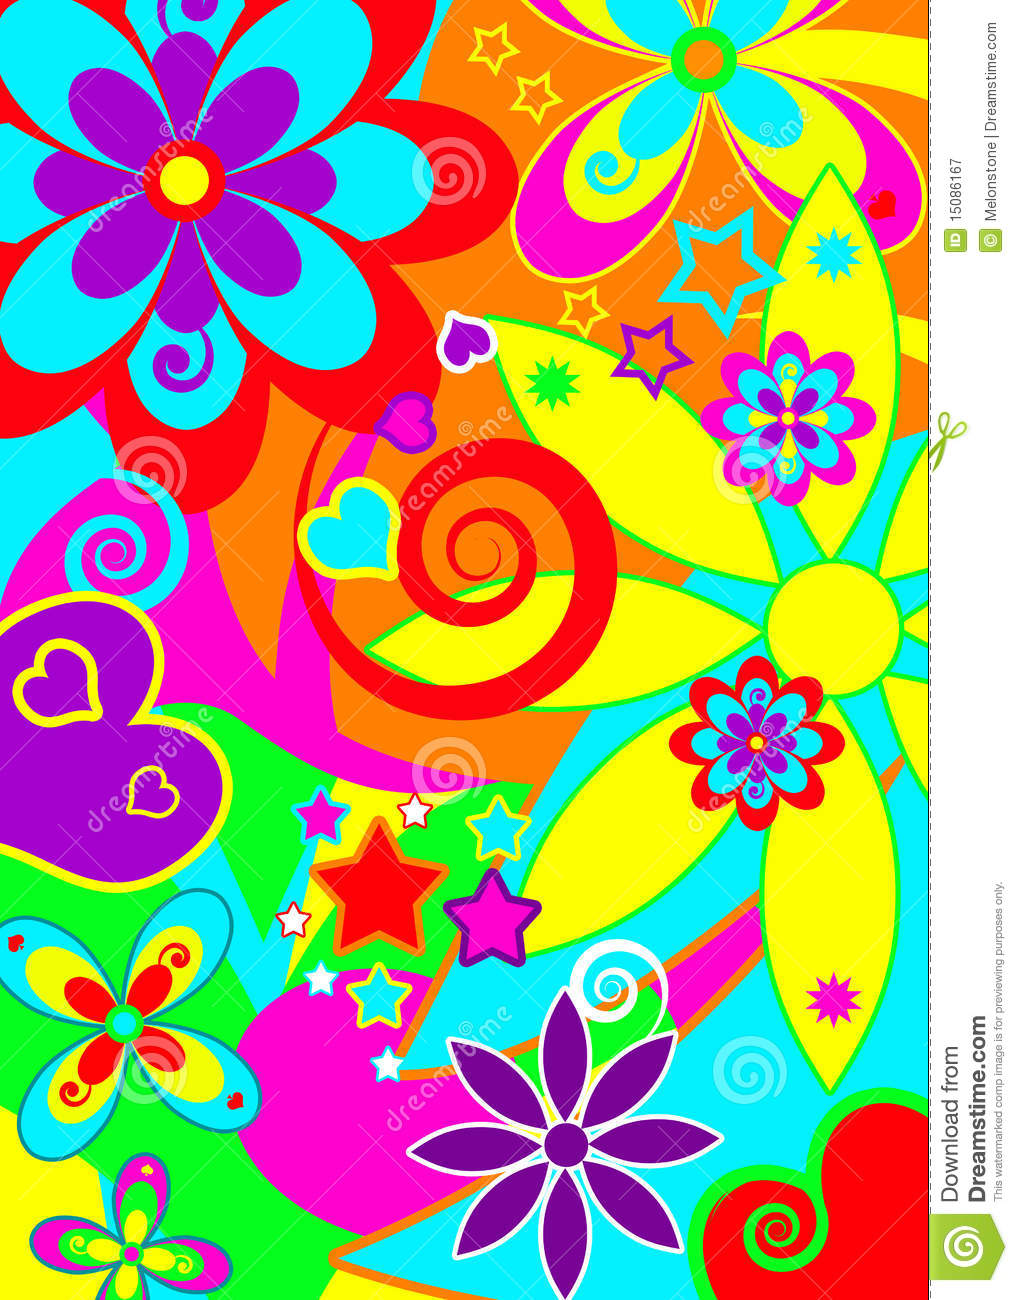 60s background wallpaper images pictures becuo